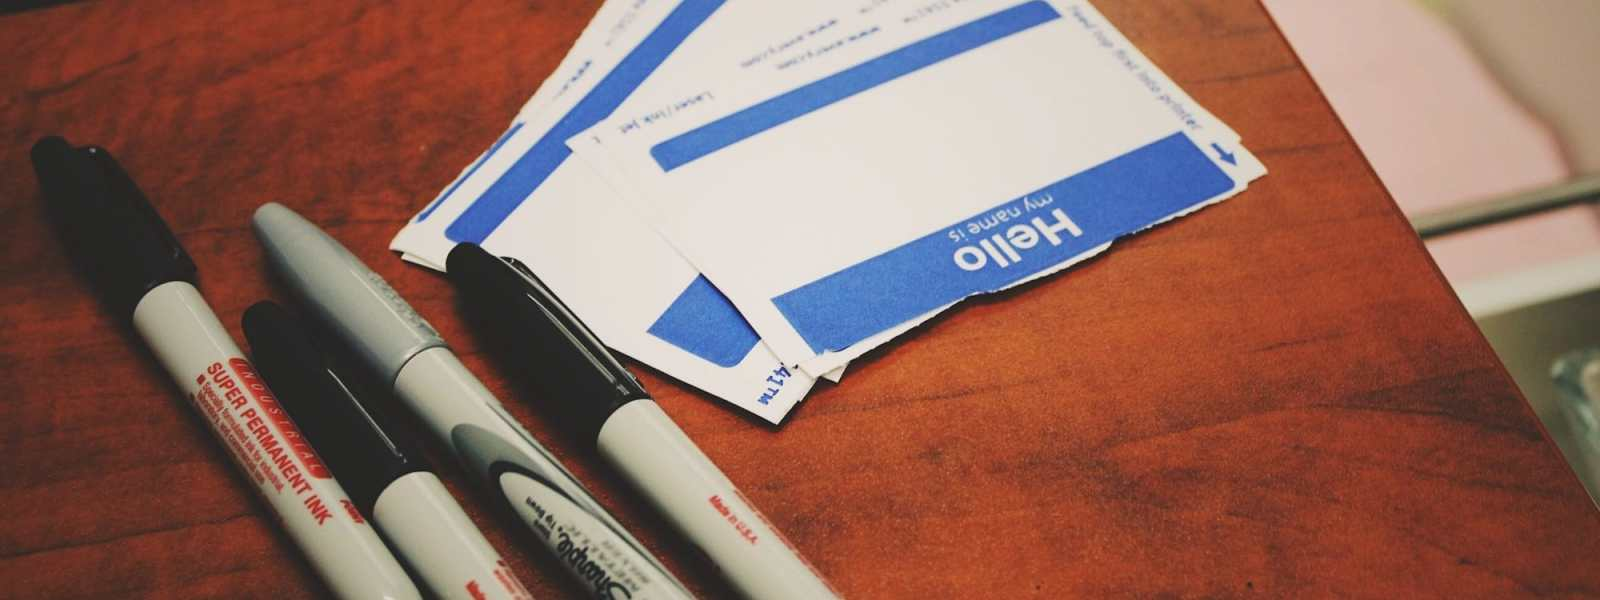 Labels: How to Use Them and When to Ditch Them